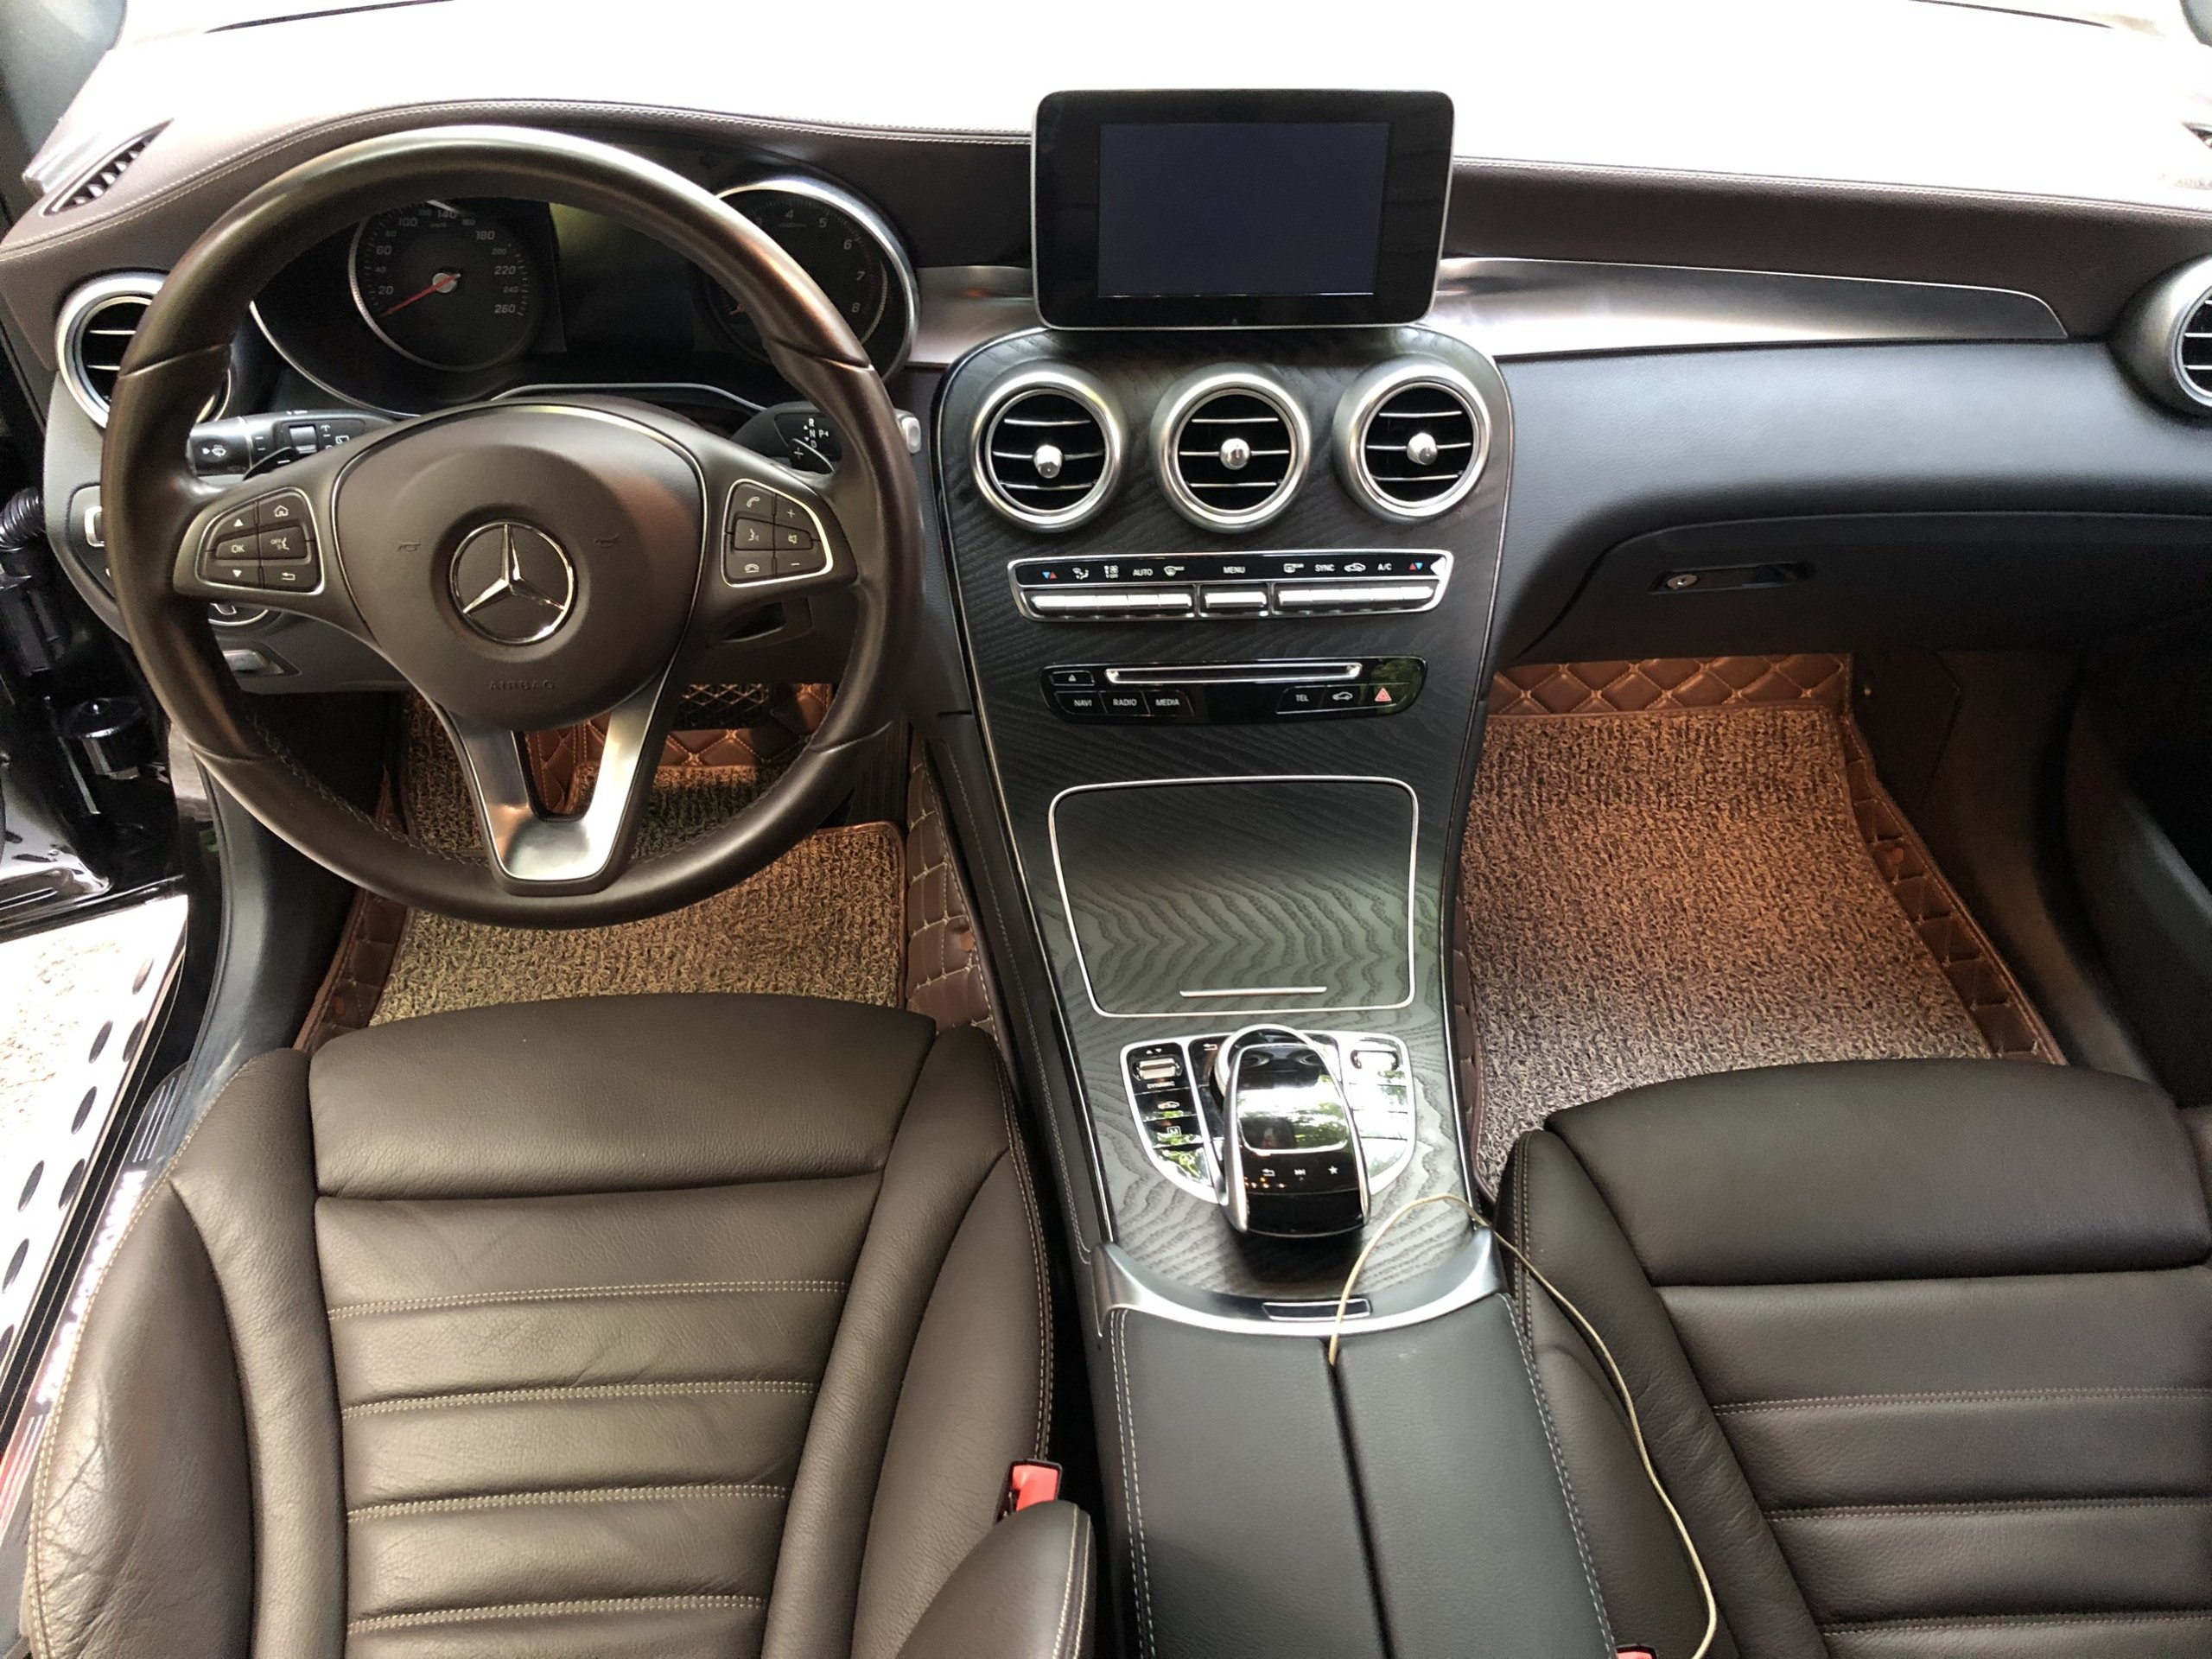 Mercedes Benz GLC300 2017